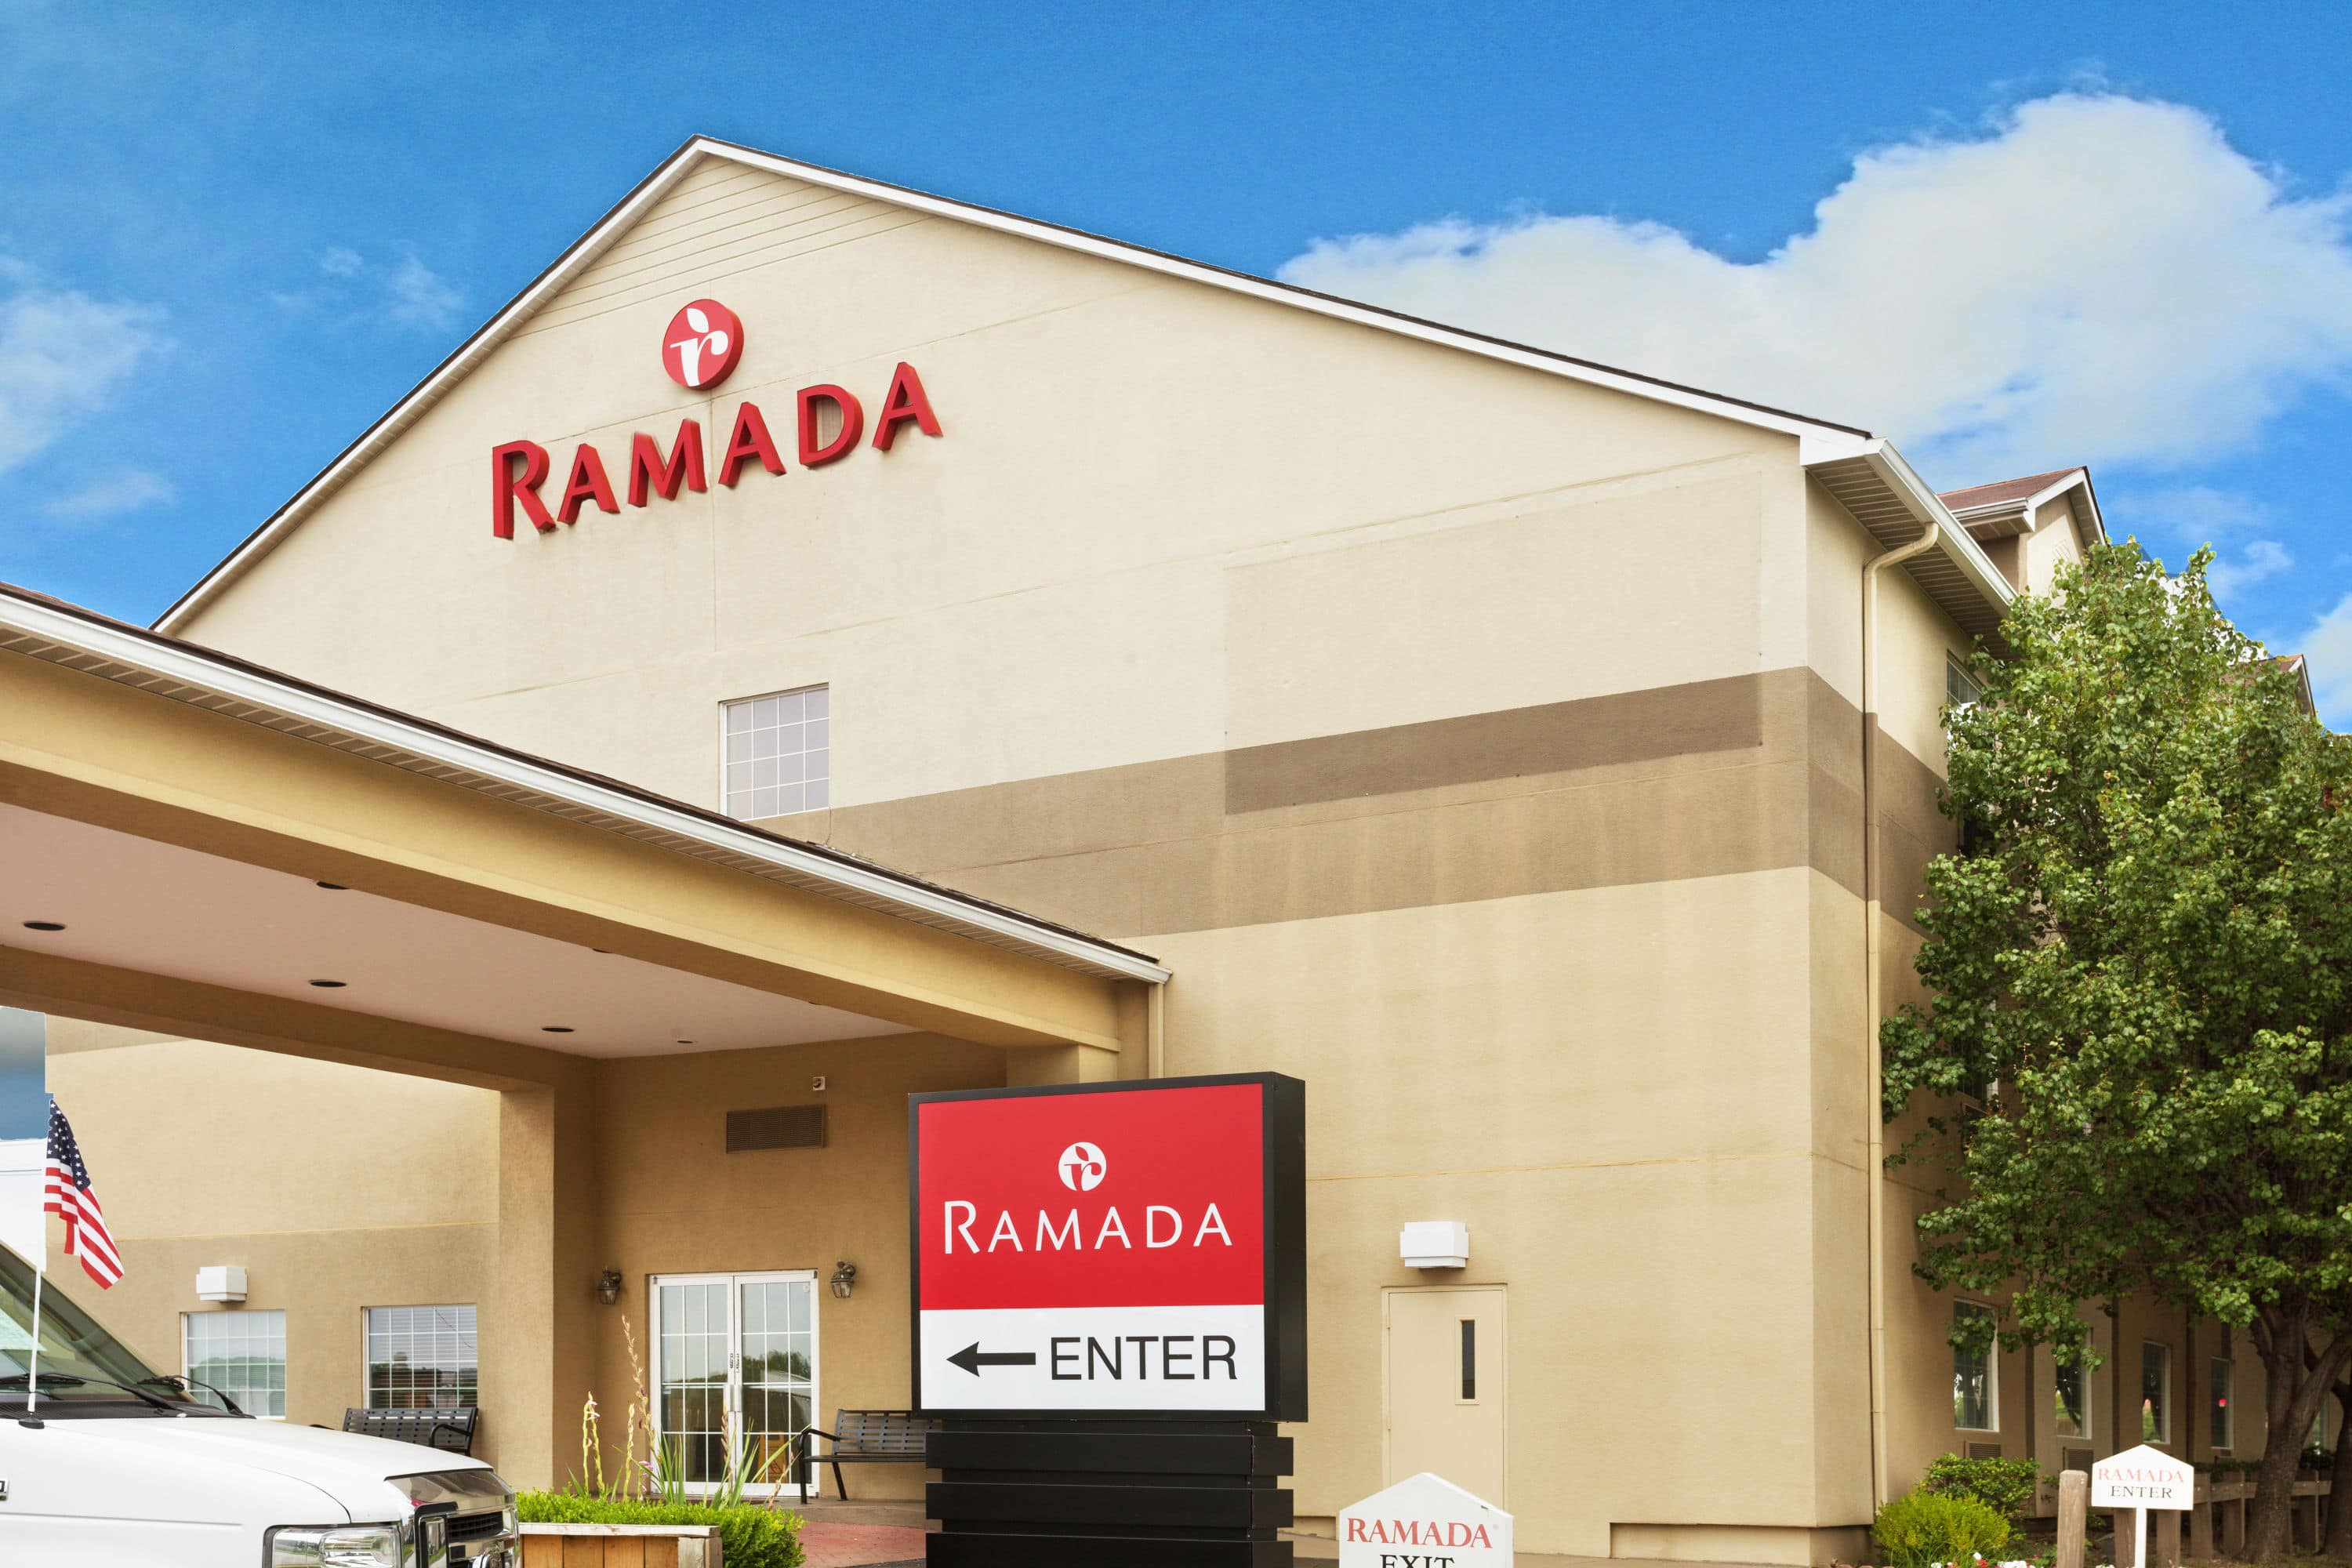 Exterior Of Ramada Louisville Expo Center Hotel In Kentucky With Hotels Near Bellarmine University